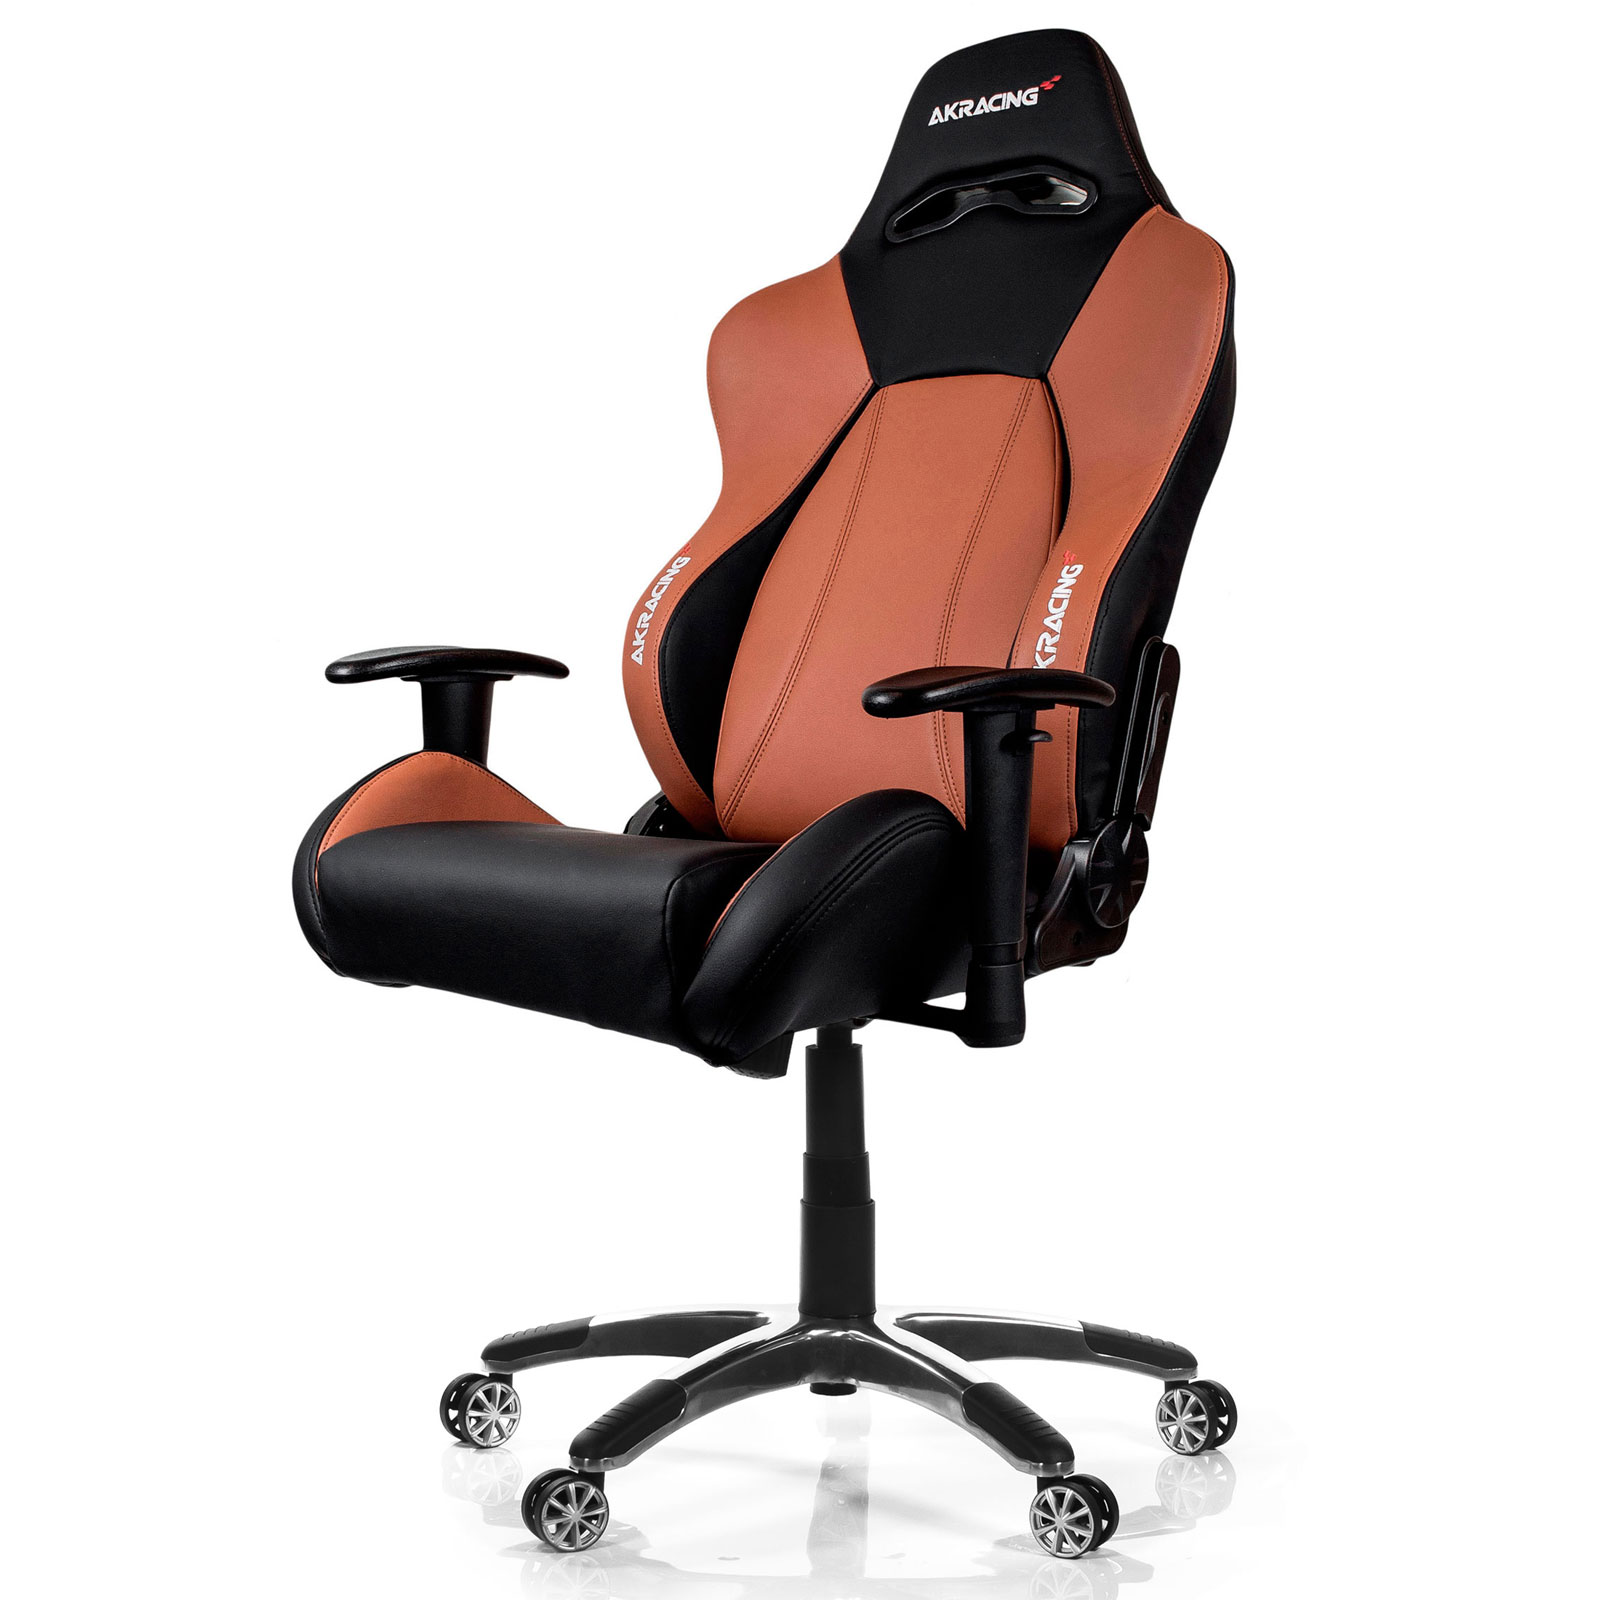 akracing premium gaming chair marron fauteuil gamer akracing sur. Black Bedroom Furniture Sets. Home Design Ideas